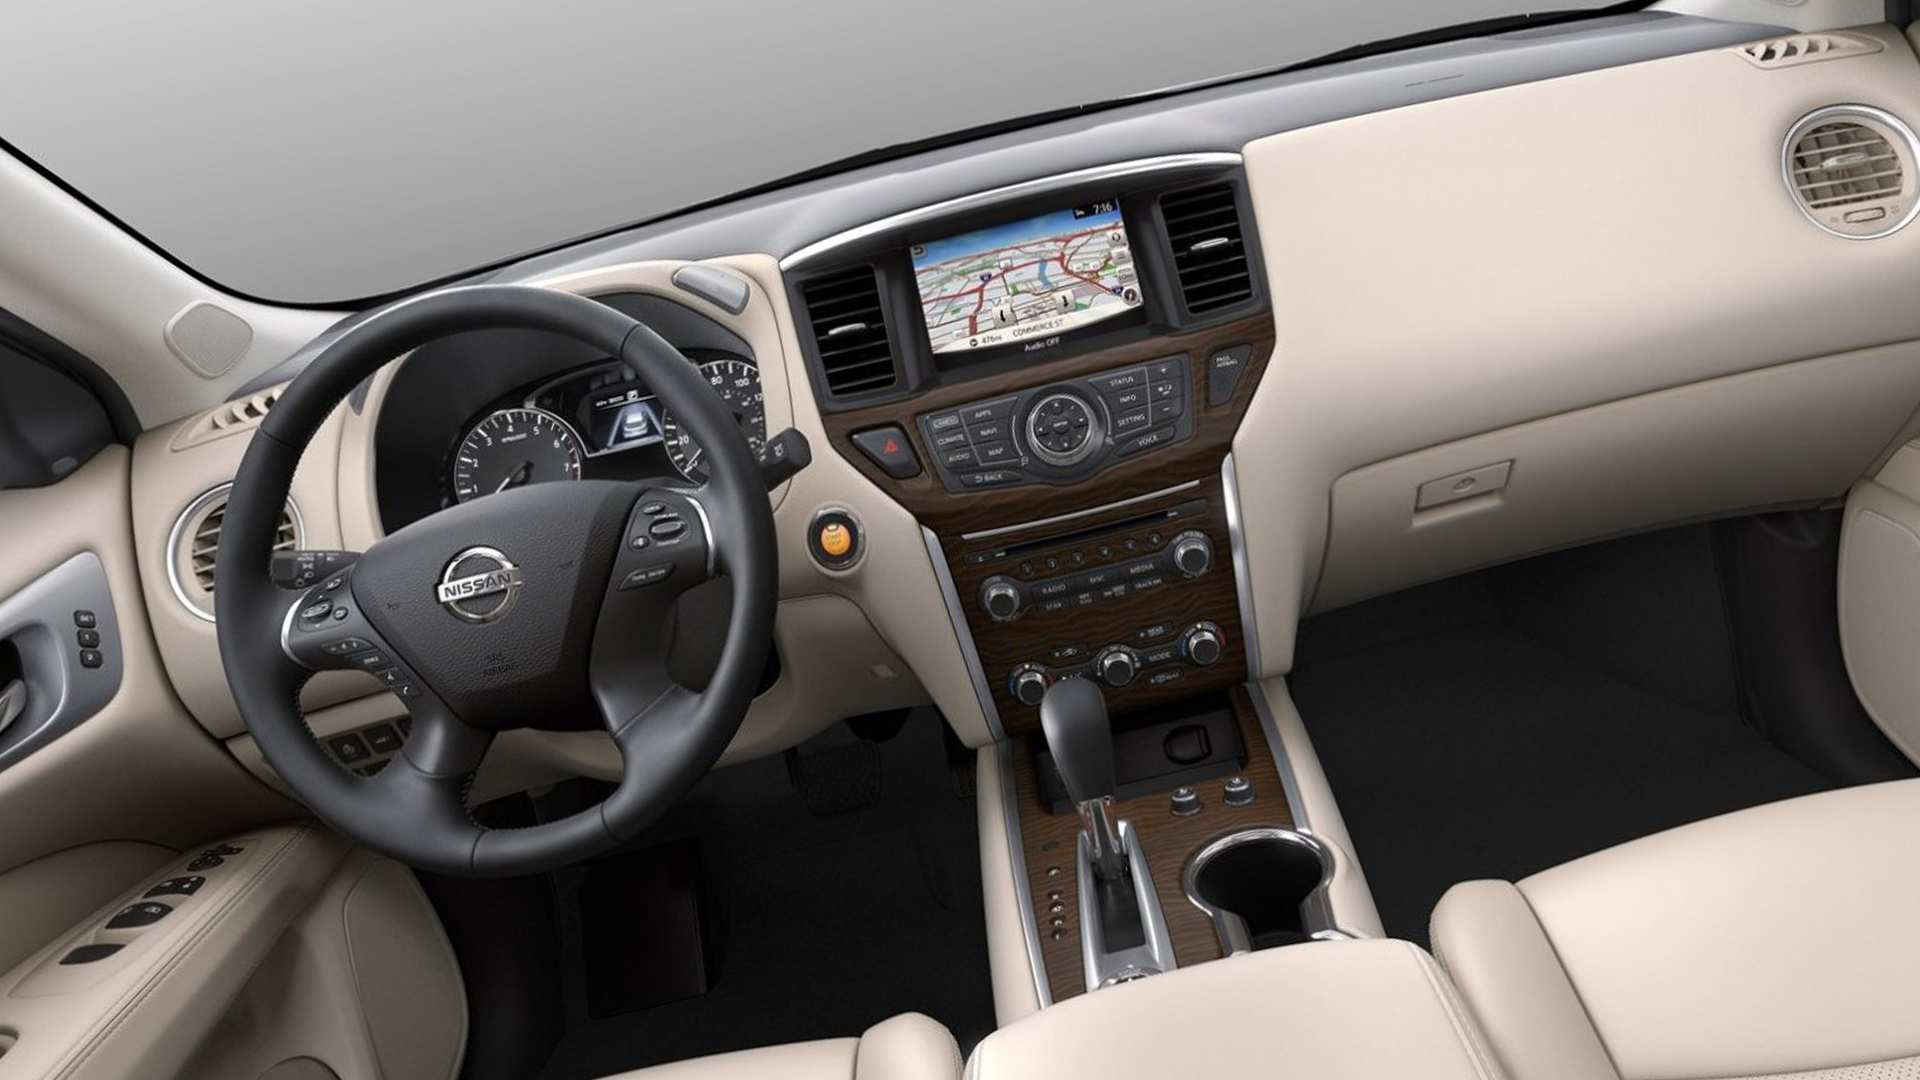 55 All New 2019 Nissan Pathfinder Hybrid Interior